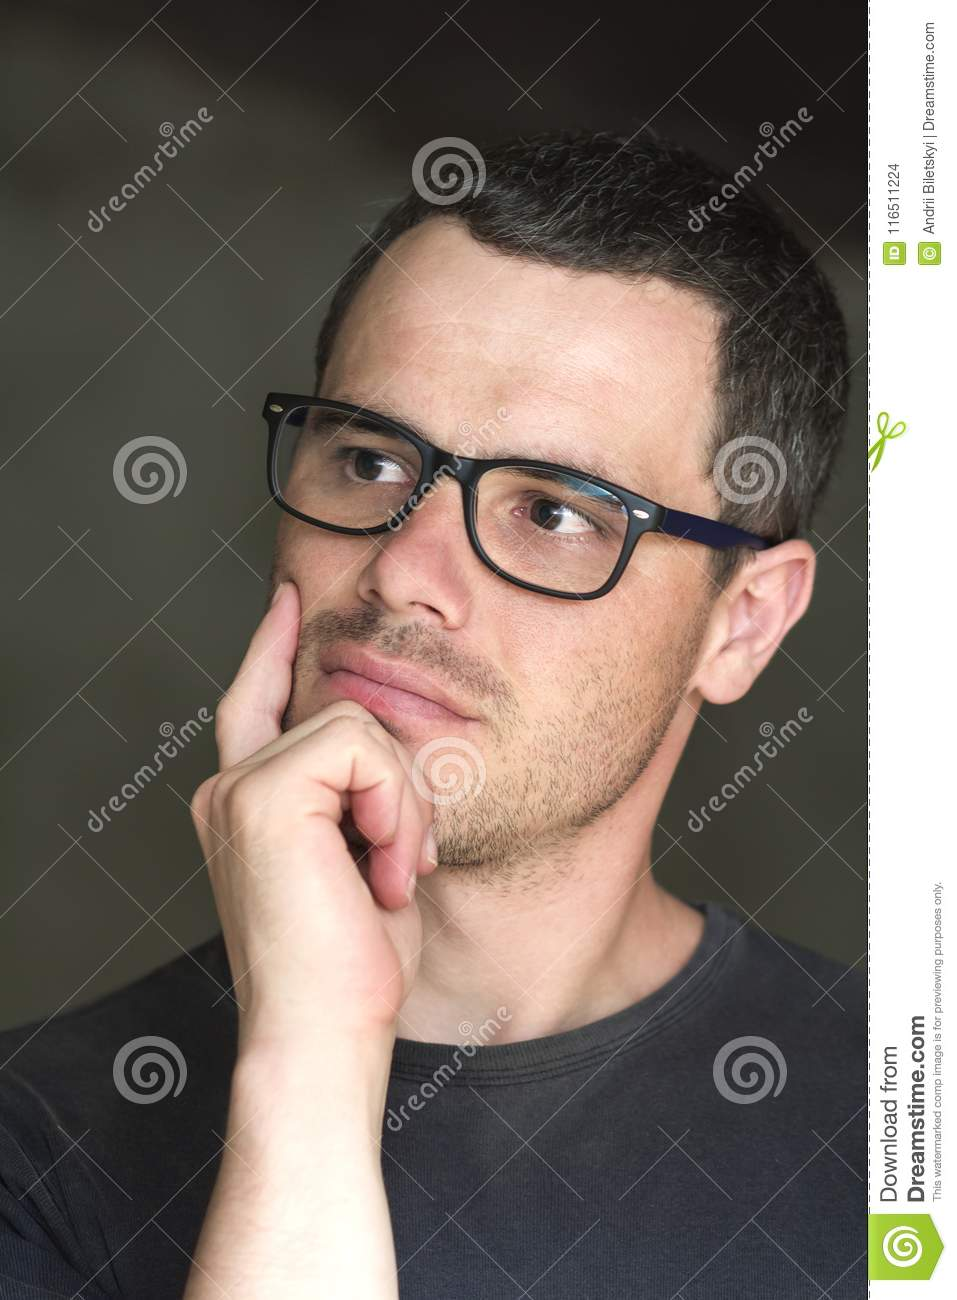 136e0ed3c195 Portrait of young handsome serious black-haired unshaven confident  successful intellectual man in glasses with shiny black eyes looking  thoughtfully into ...